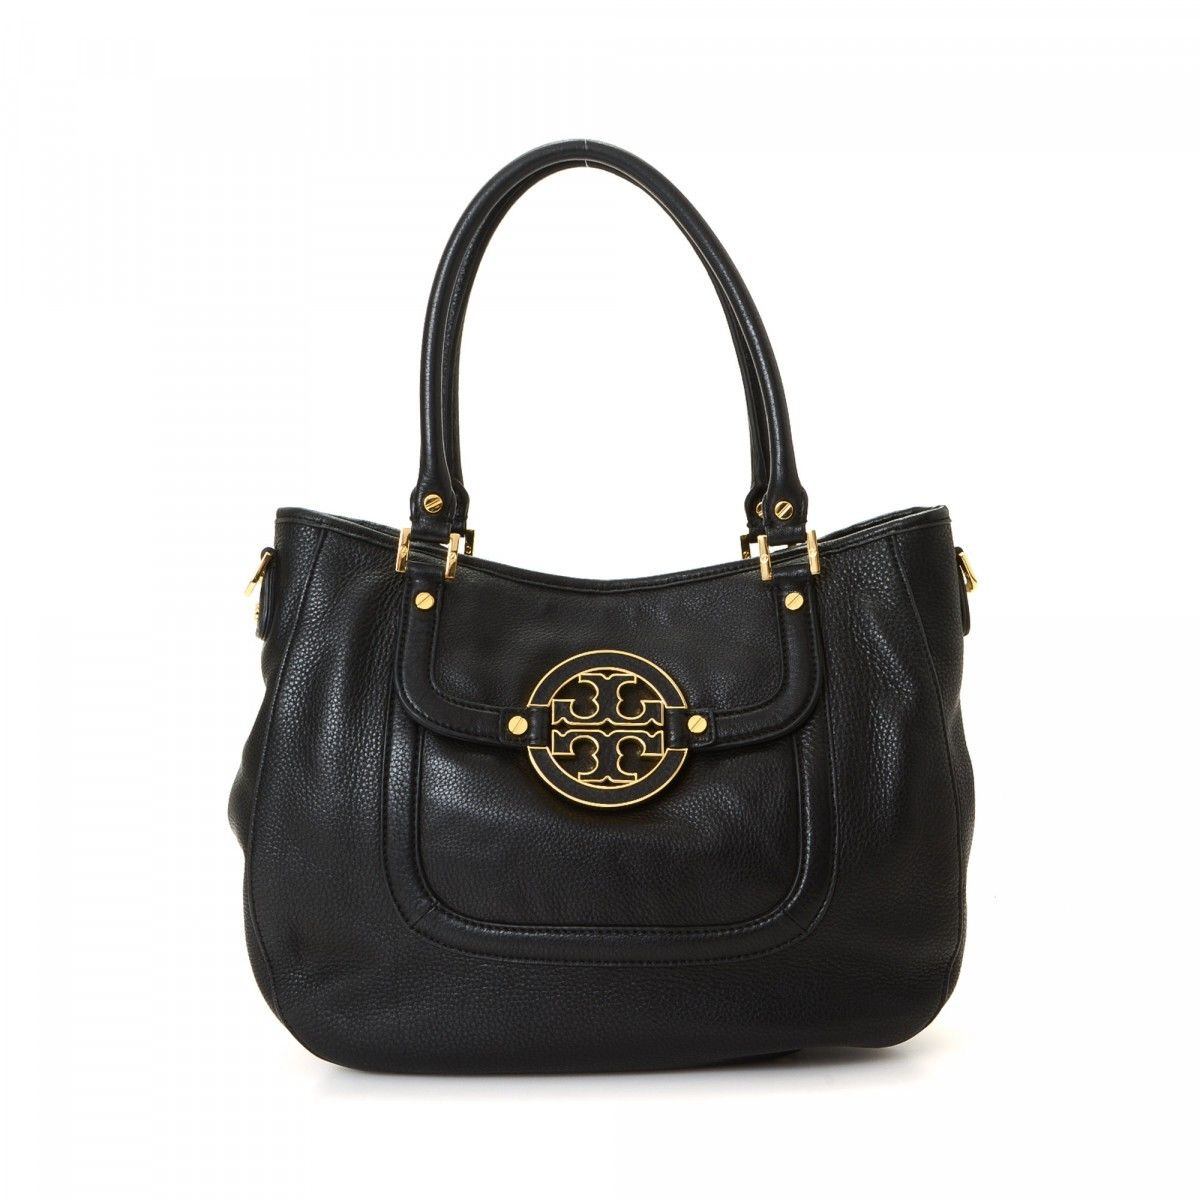 Tory Burch Pre-owned - Shoulder bag hDnki3a